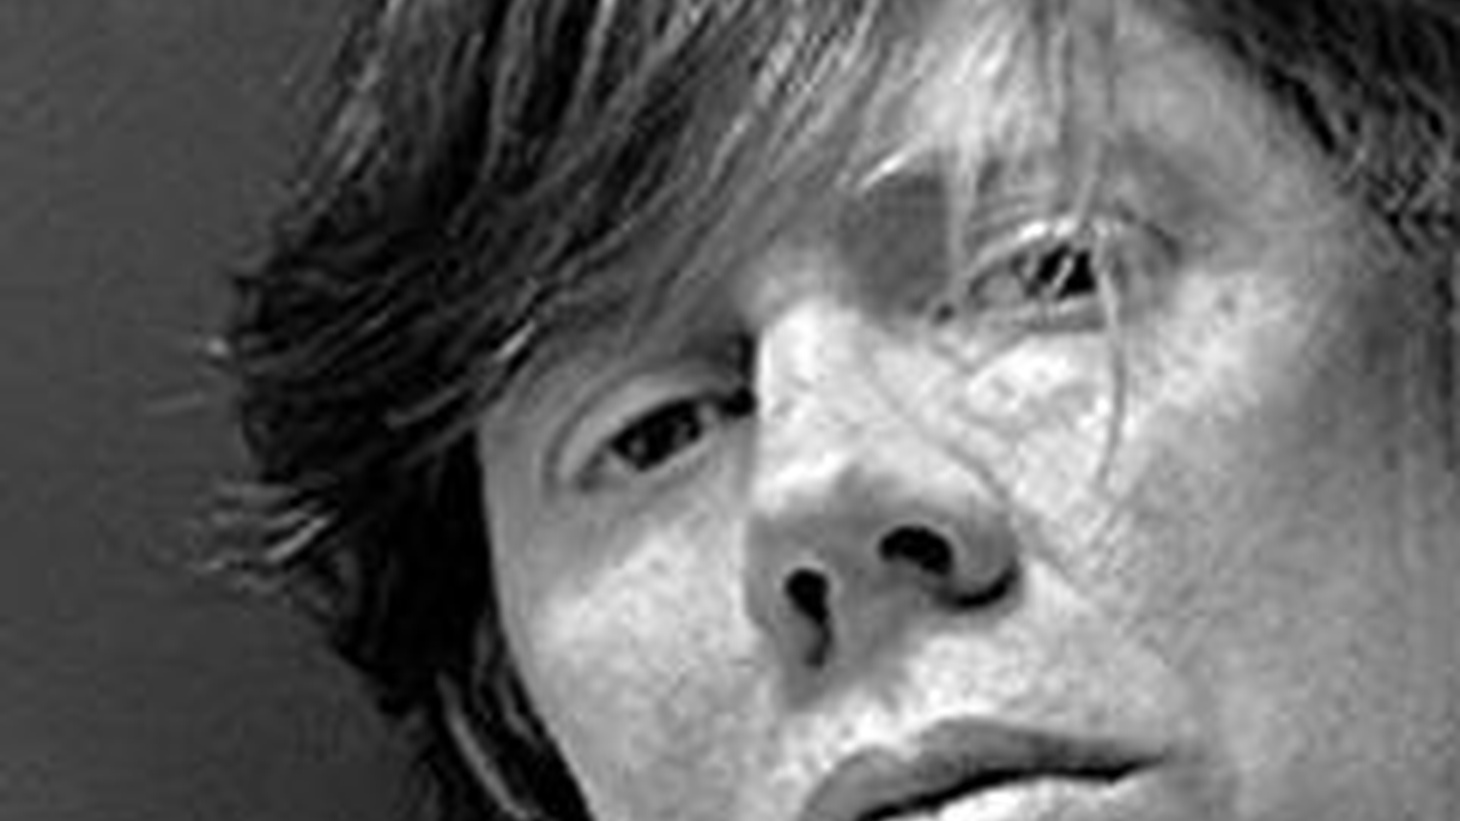 Sonic Youth  founder, Thurston Moore strikes out on his own on Morning Becomes Eclectic at 11:15am.